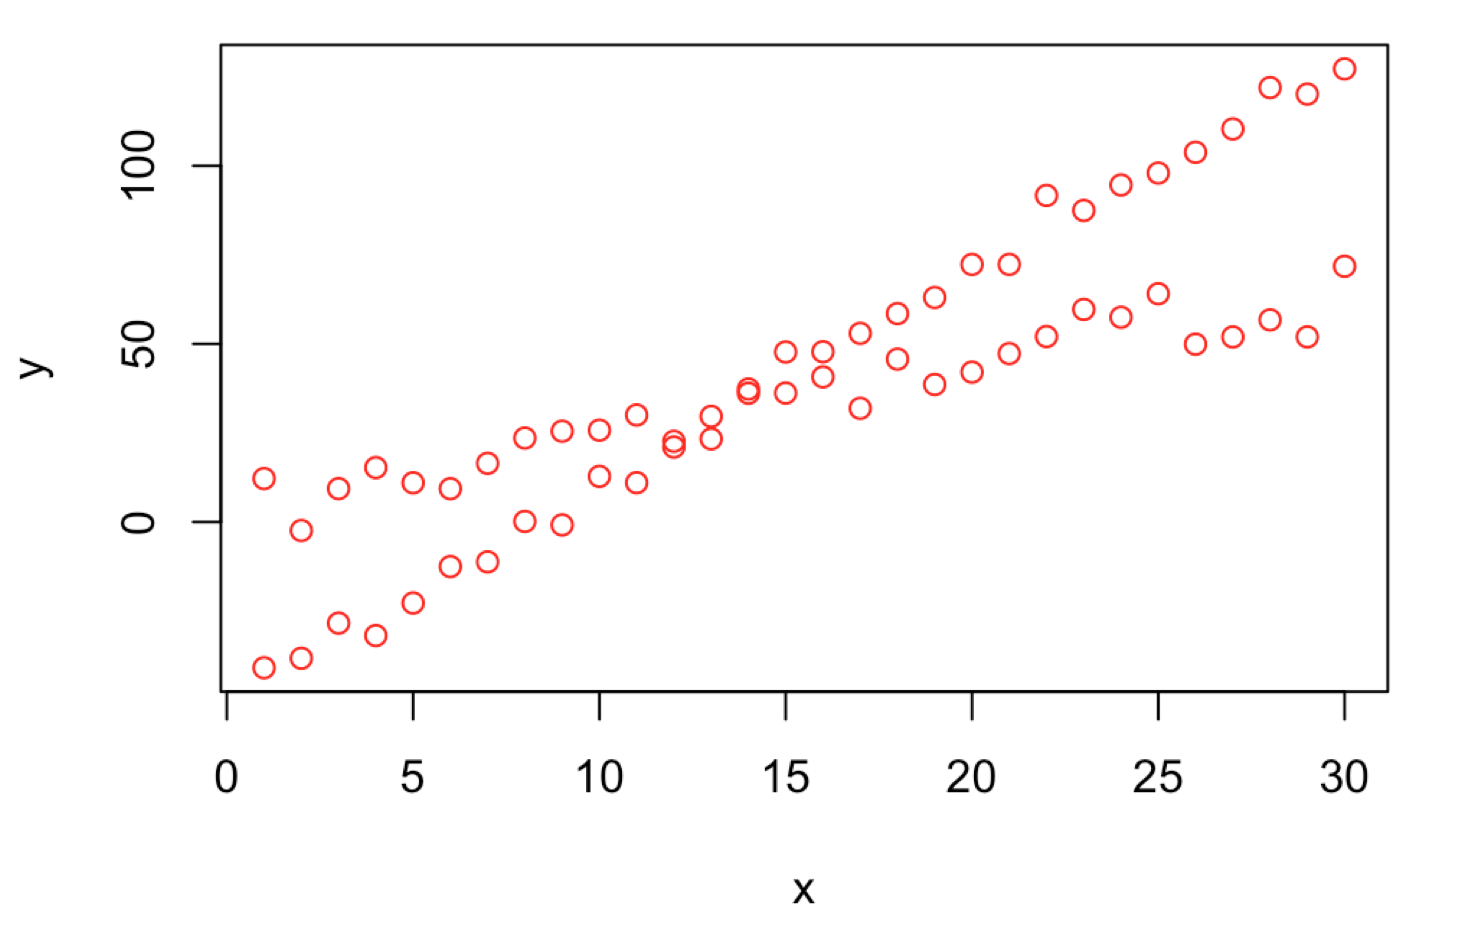 Basics of Independent Component Analysis - Towards Data Science